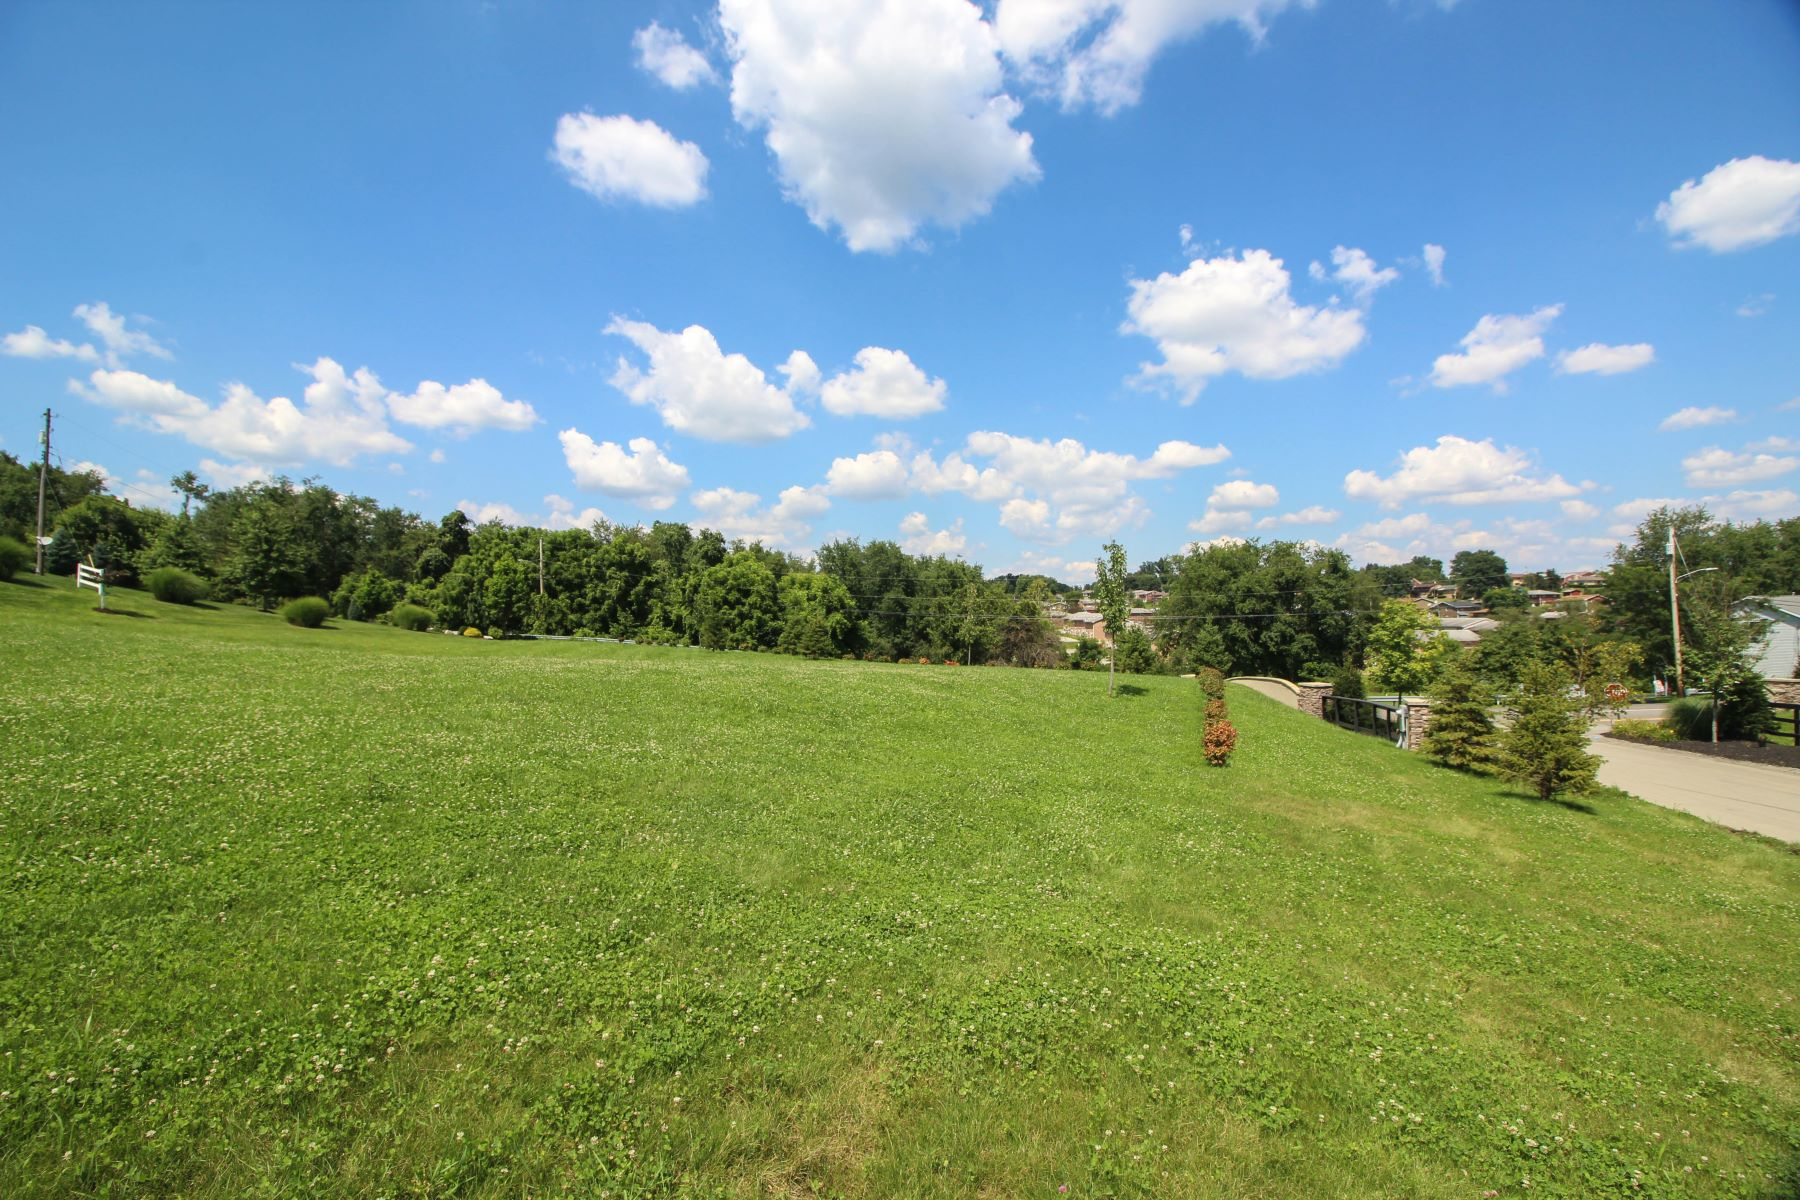 Land for Sale at Piatt Estates Home Site - Lot 109BR 97 Piatt Estates Drive Washington, Pennsylvania 15301 United States